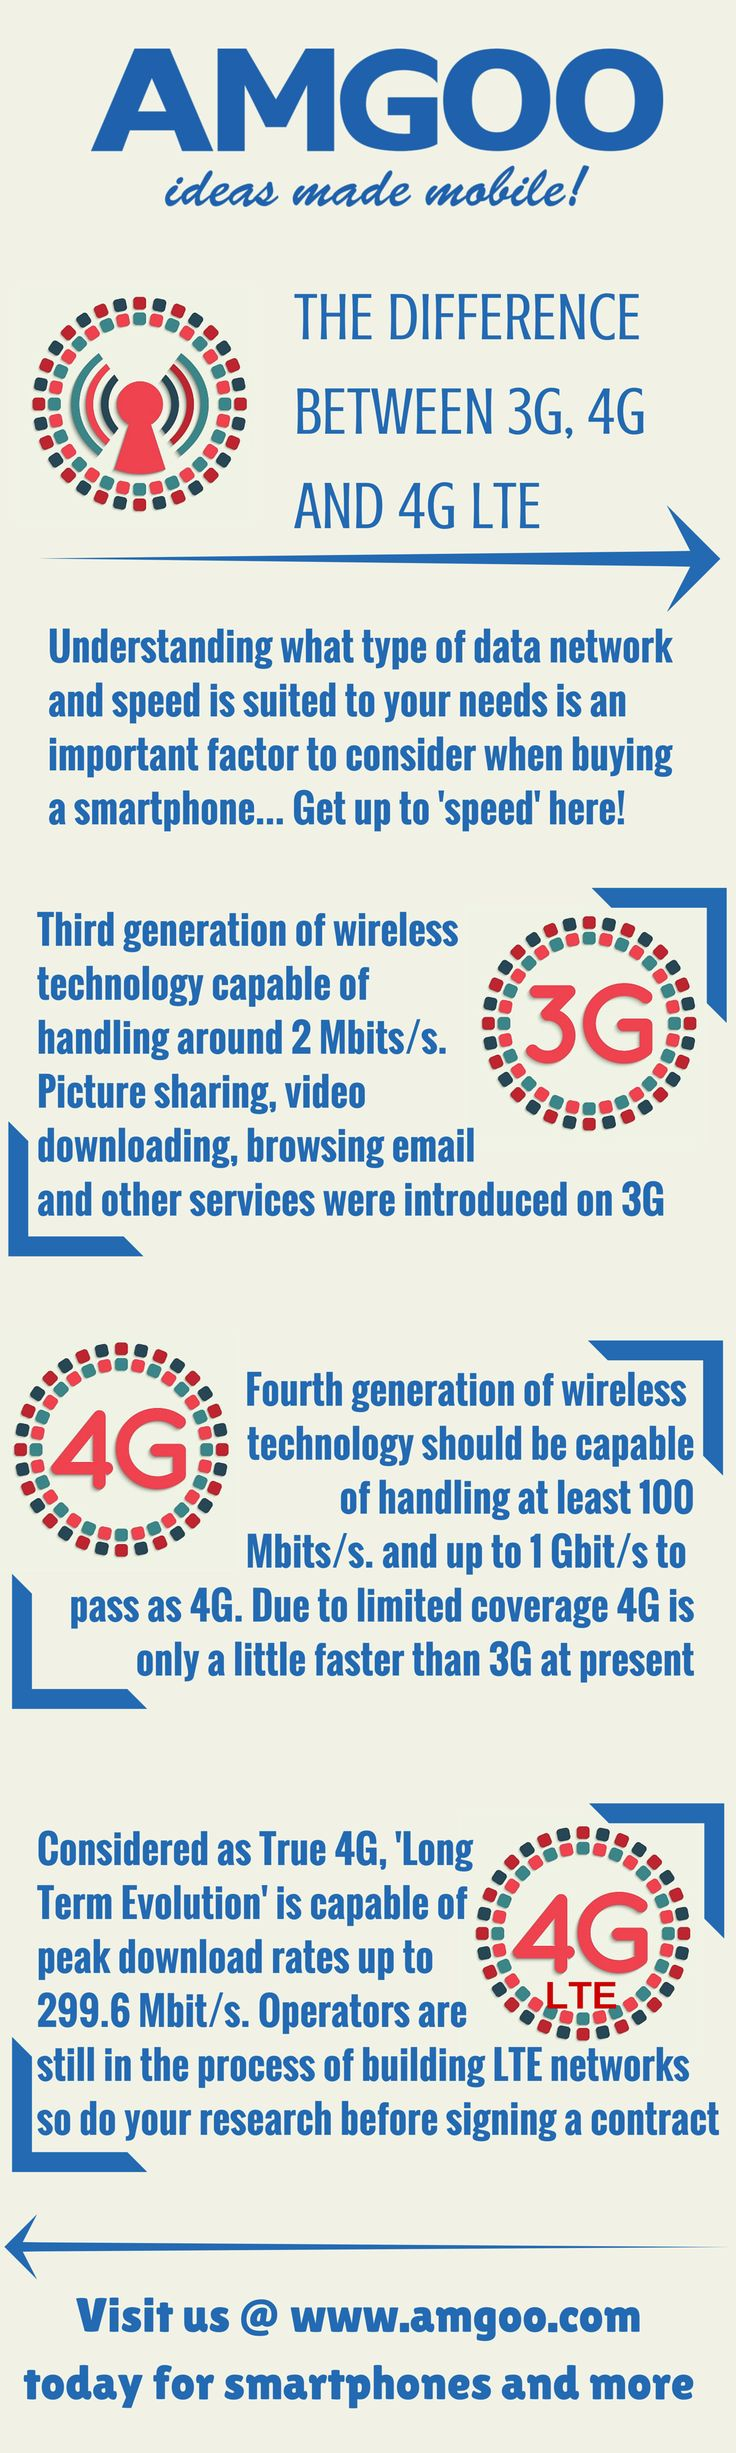 Find out the differences between 3G, 4G and 4G LTE here! Visit us @ http://www.amgoo.com/ for smartphones and more #AMGOO #Smartphones